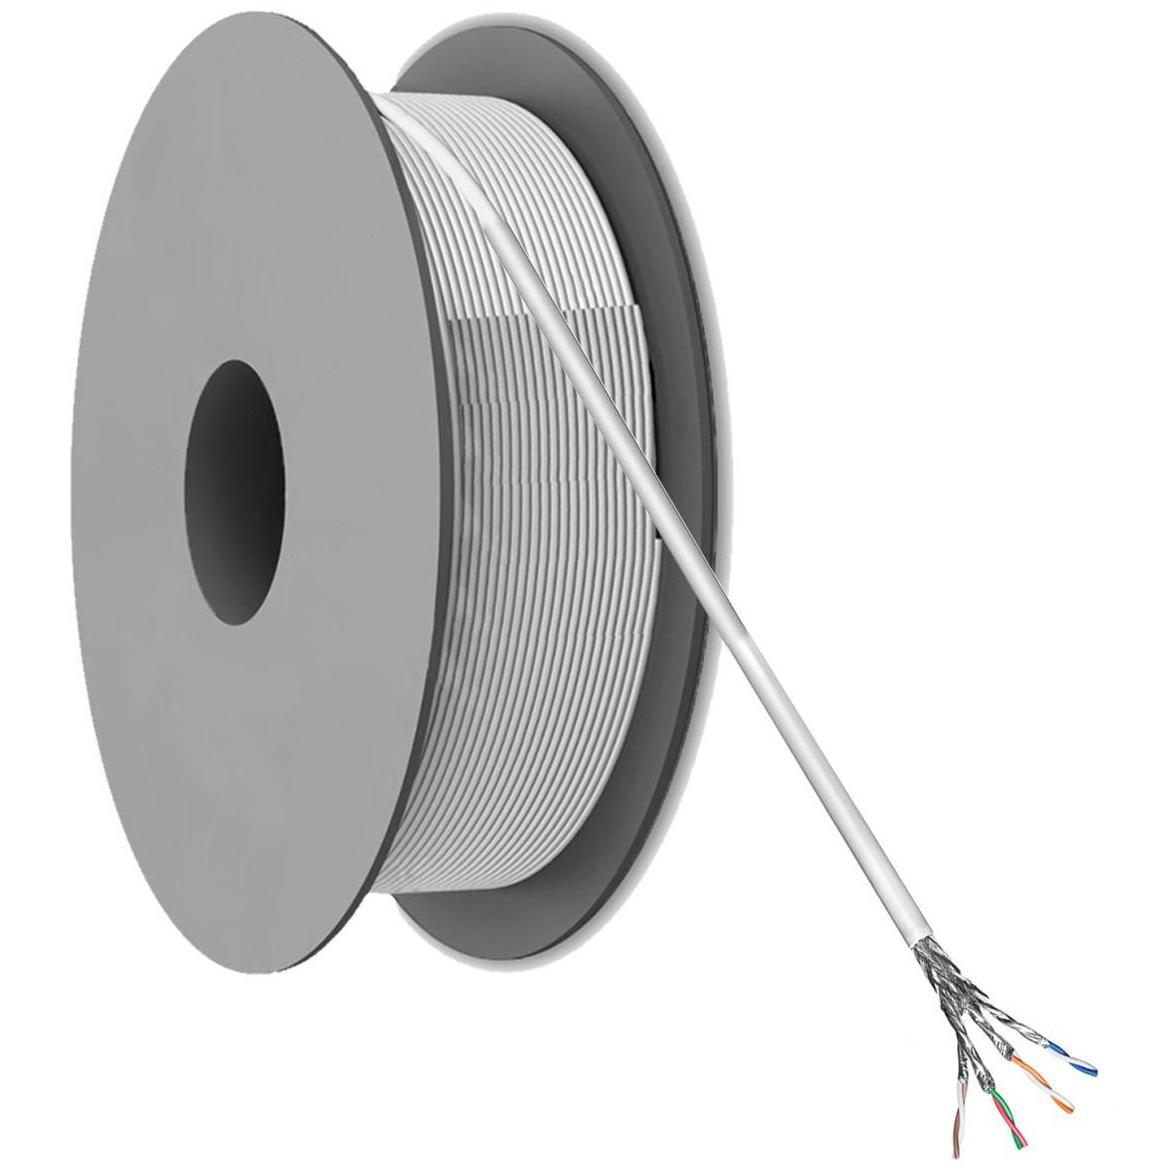 Cat 6 S/FTP netwerkkabel per rol